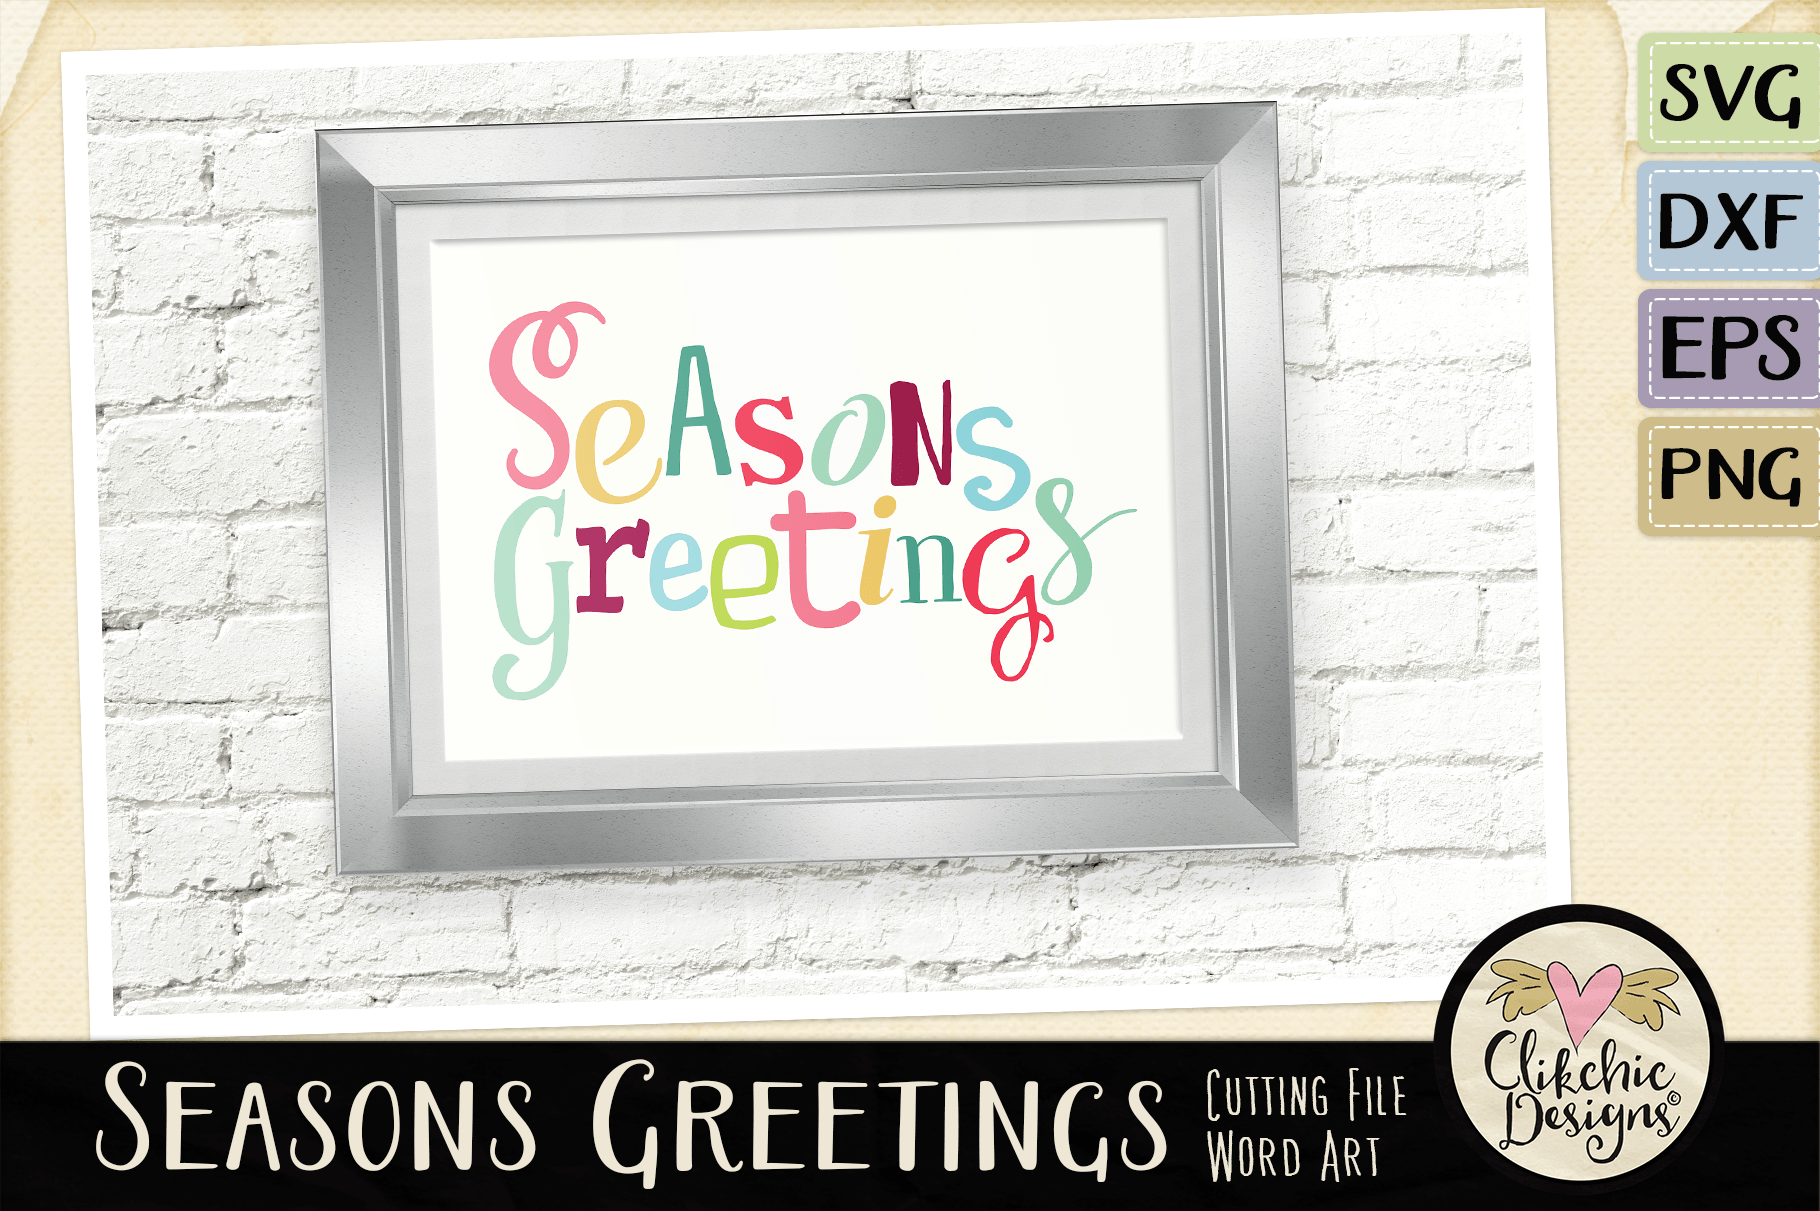 Chistmas SVG - Seasons Greetings Word Art & Vector Clipart example image 5